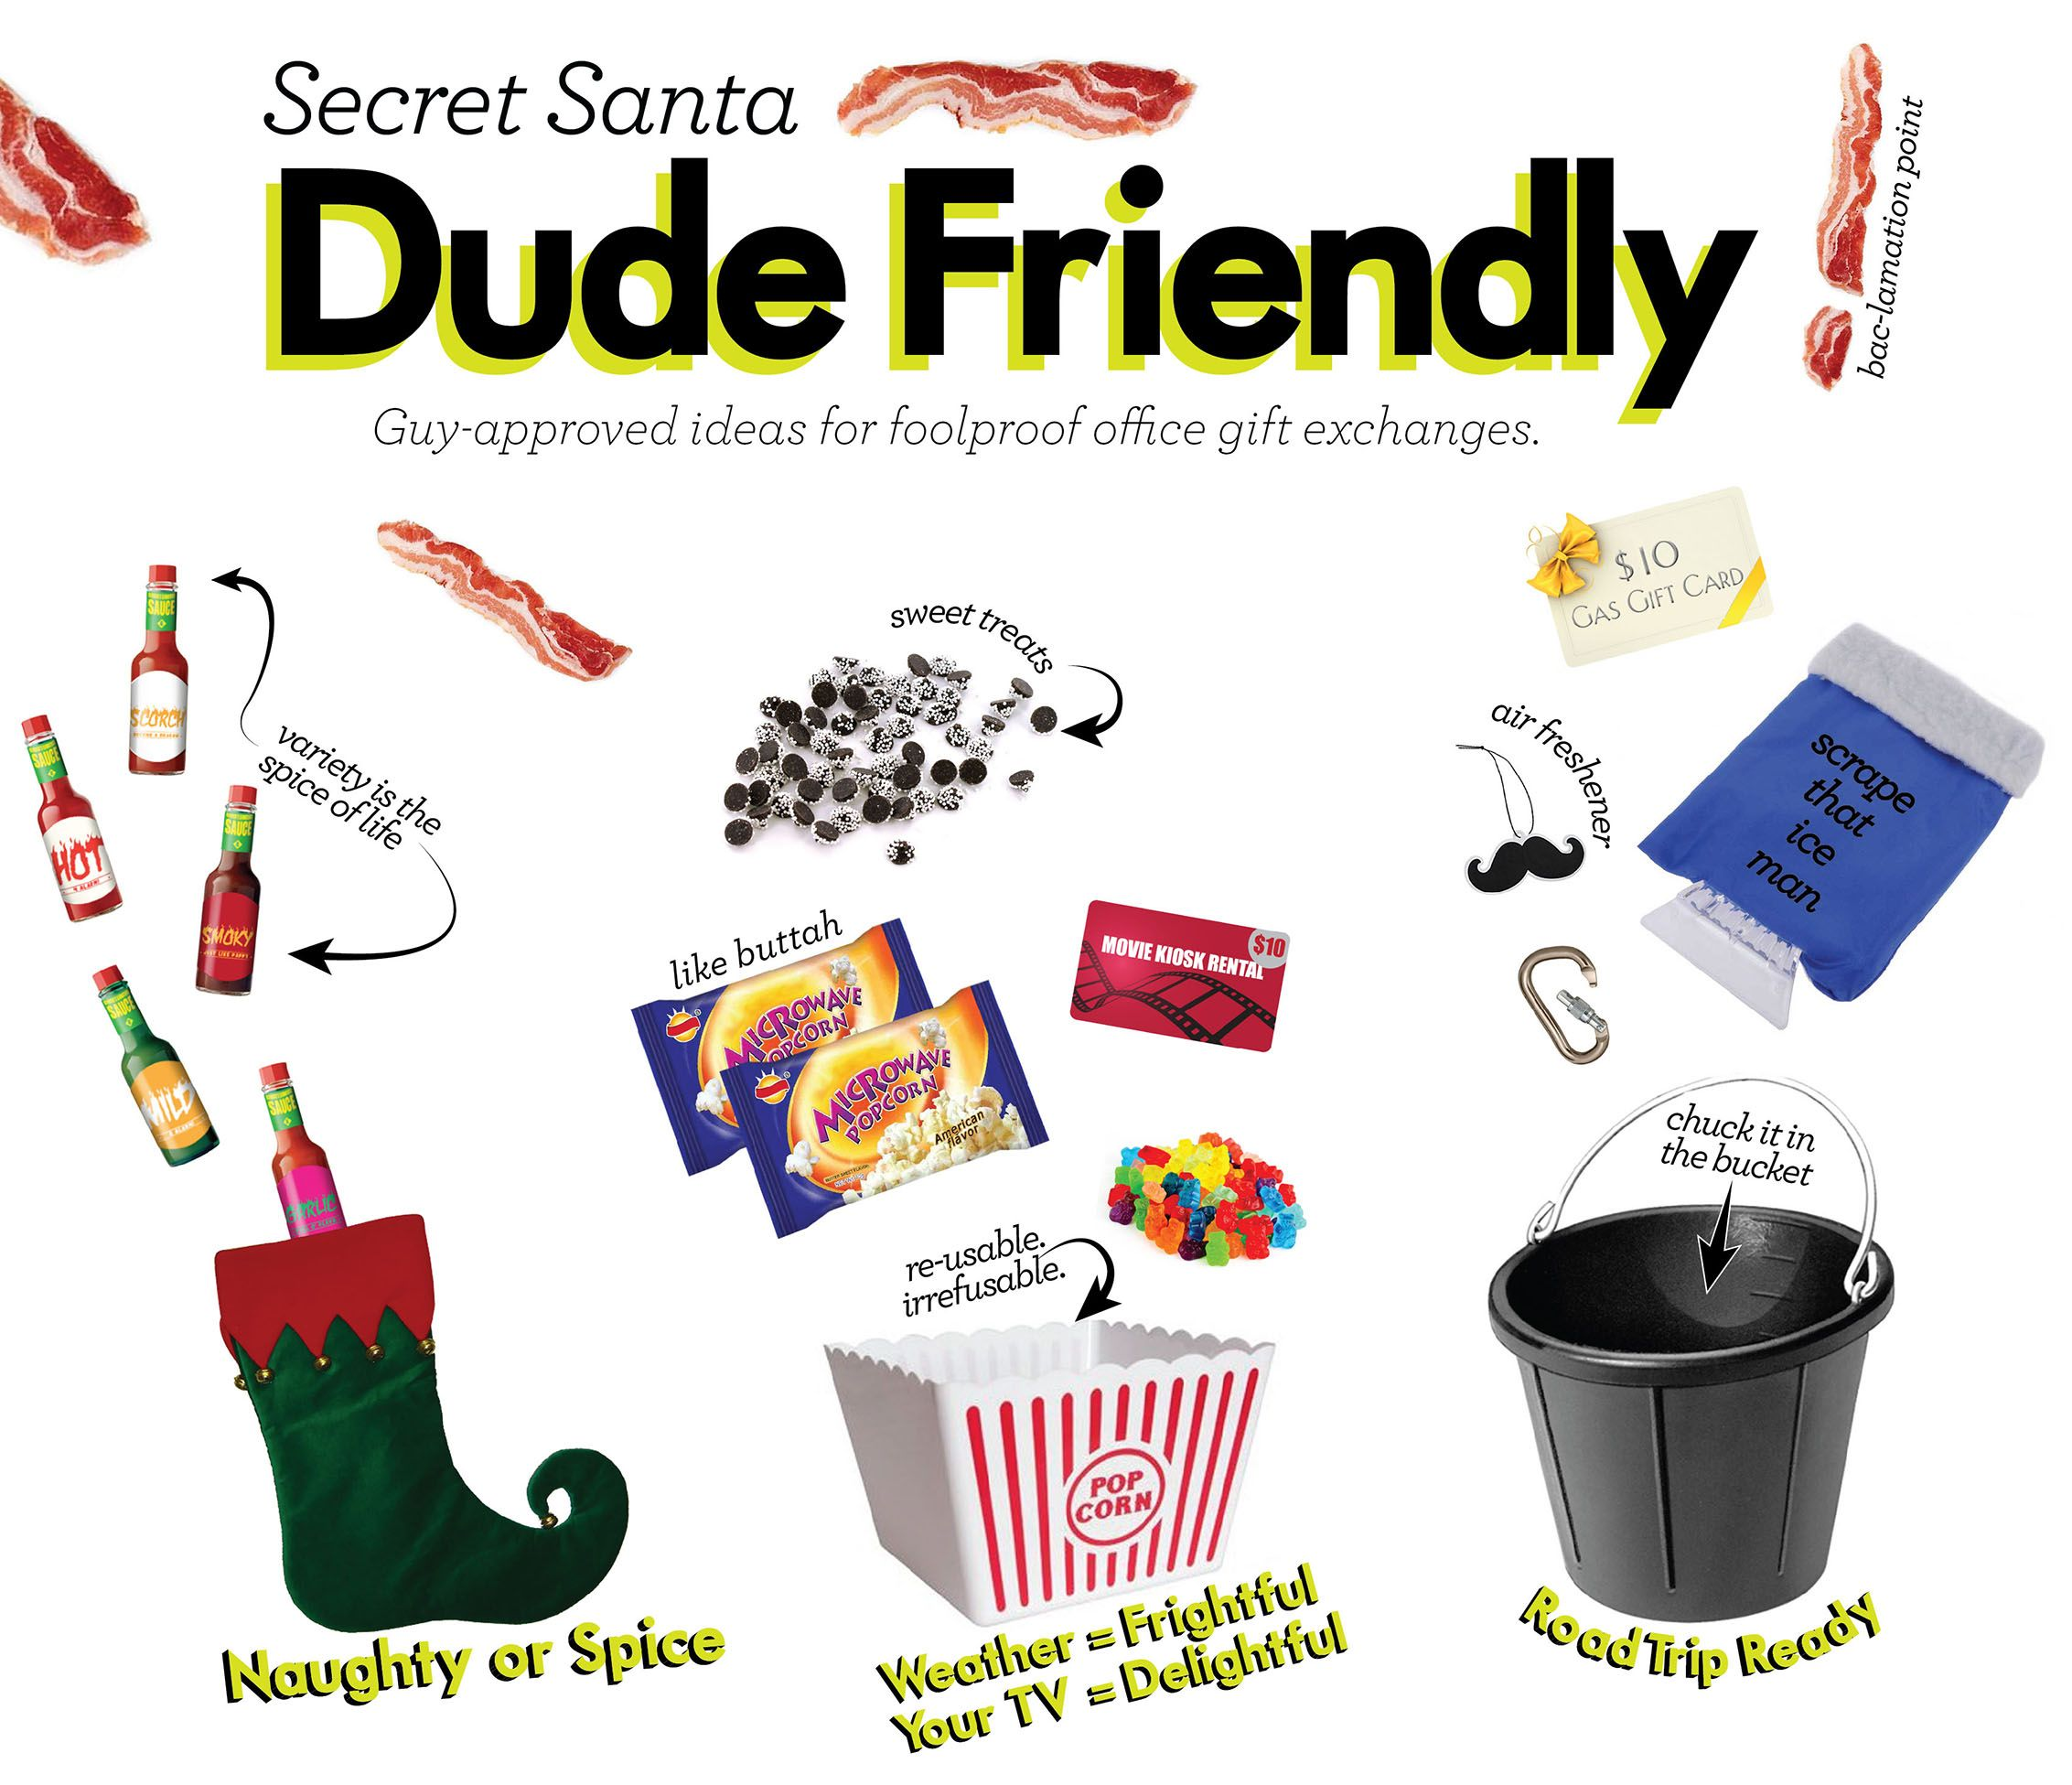 Secret santa gift ideas gifts and ideas for office review ebooks